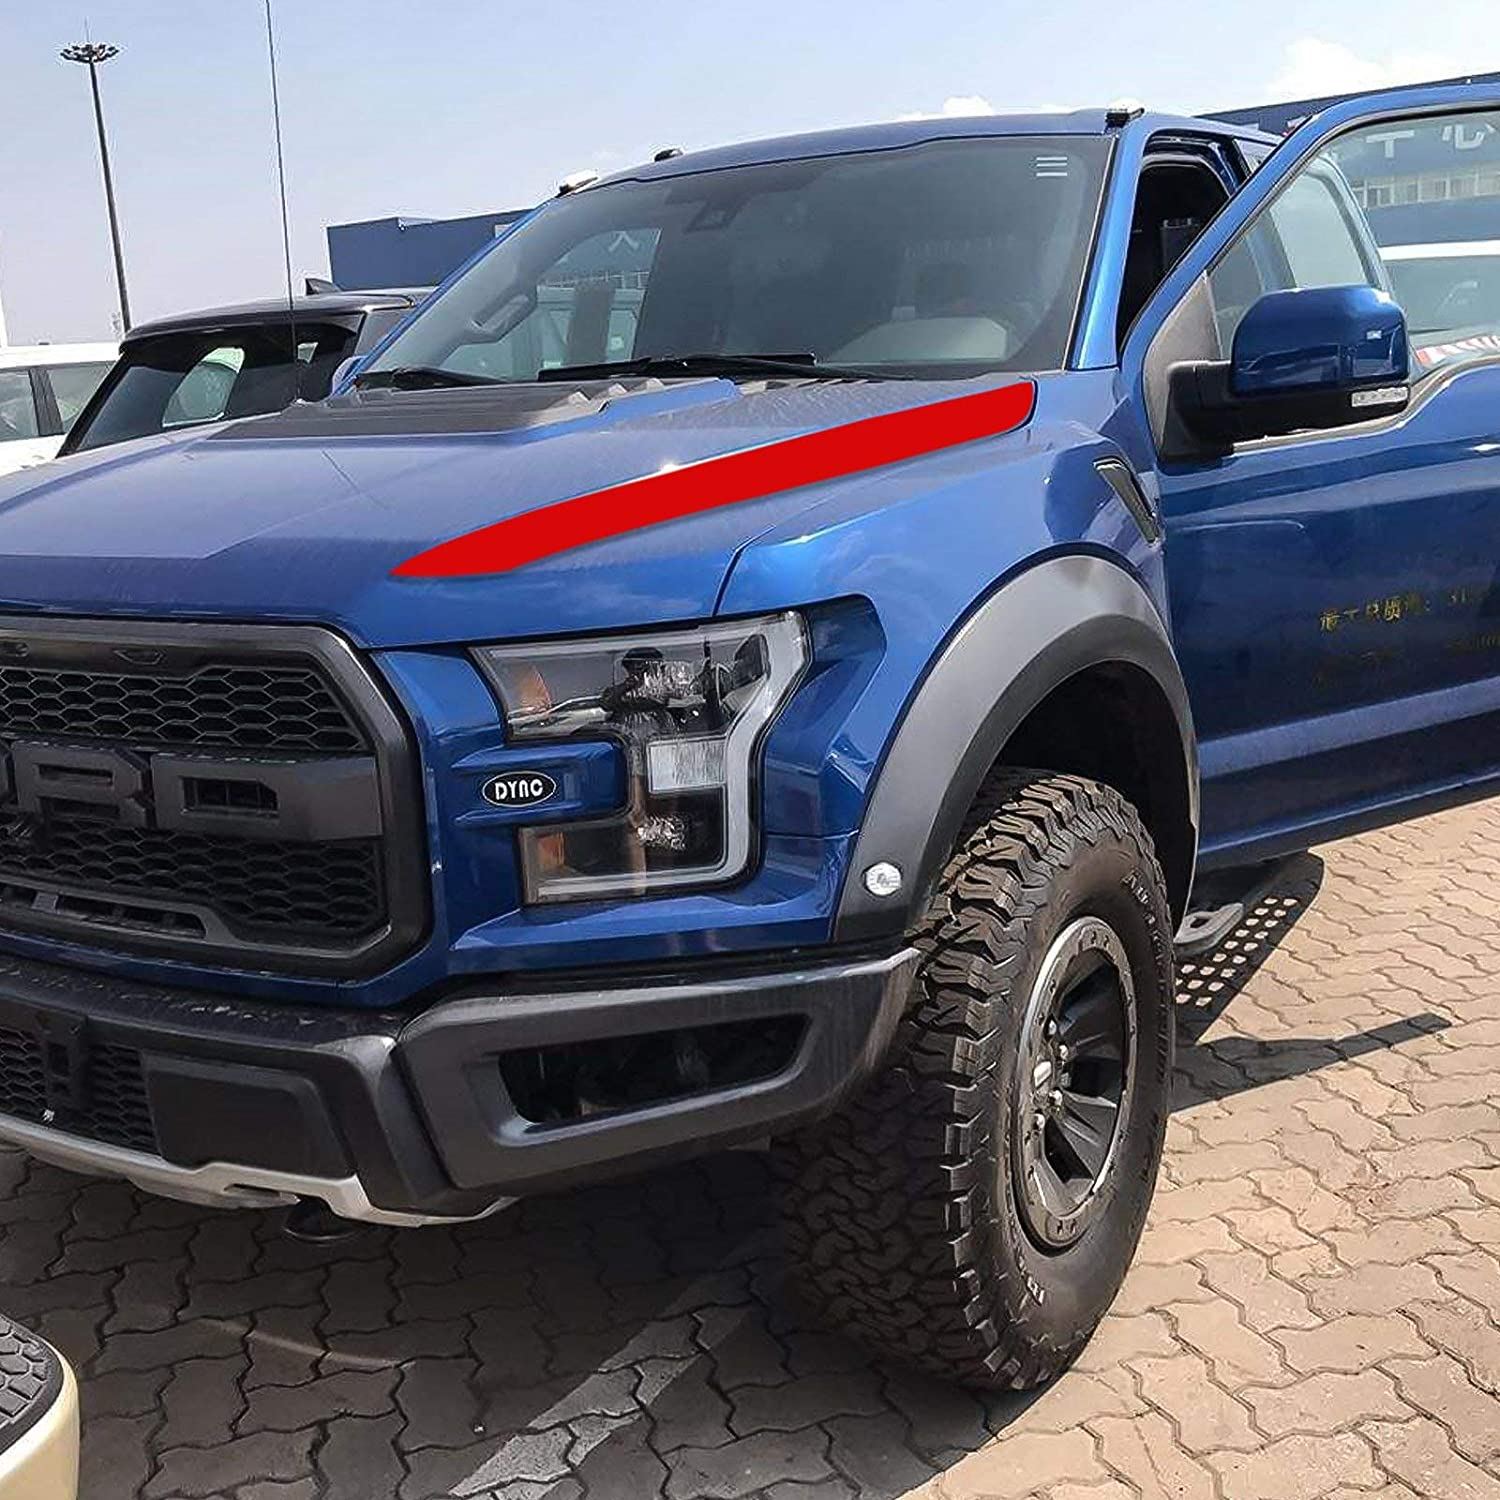 Xotic Tech Cowl Hood Vinyl Sticker Stylish Spears Stripe Decal Trim for Ford F150 F-150 2015-2019 Matte Black